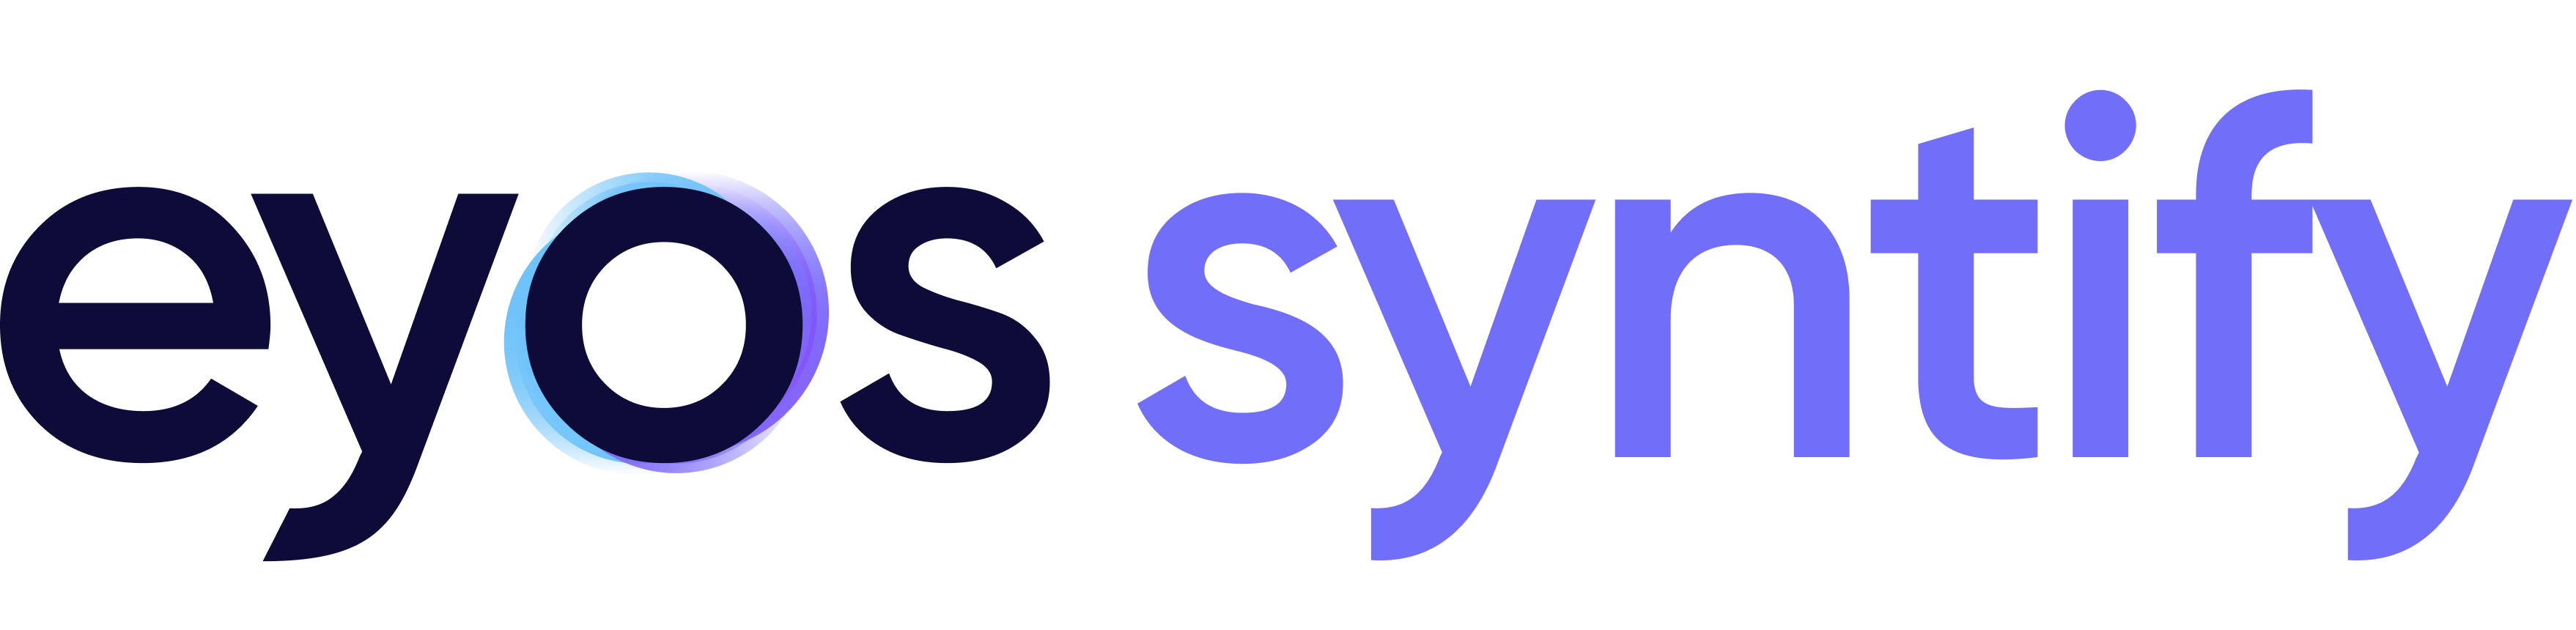 eyos-syntify-brand-marketers-logo